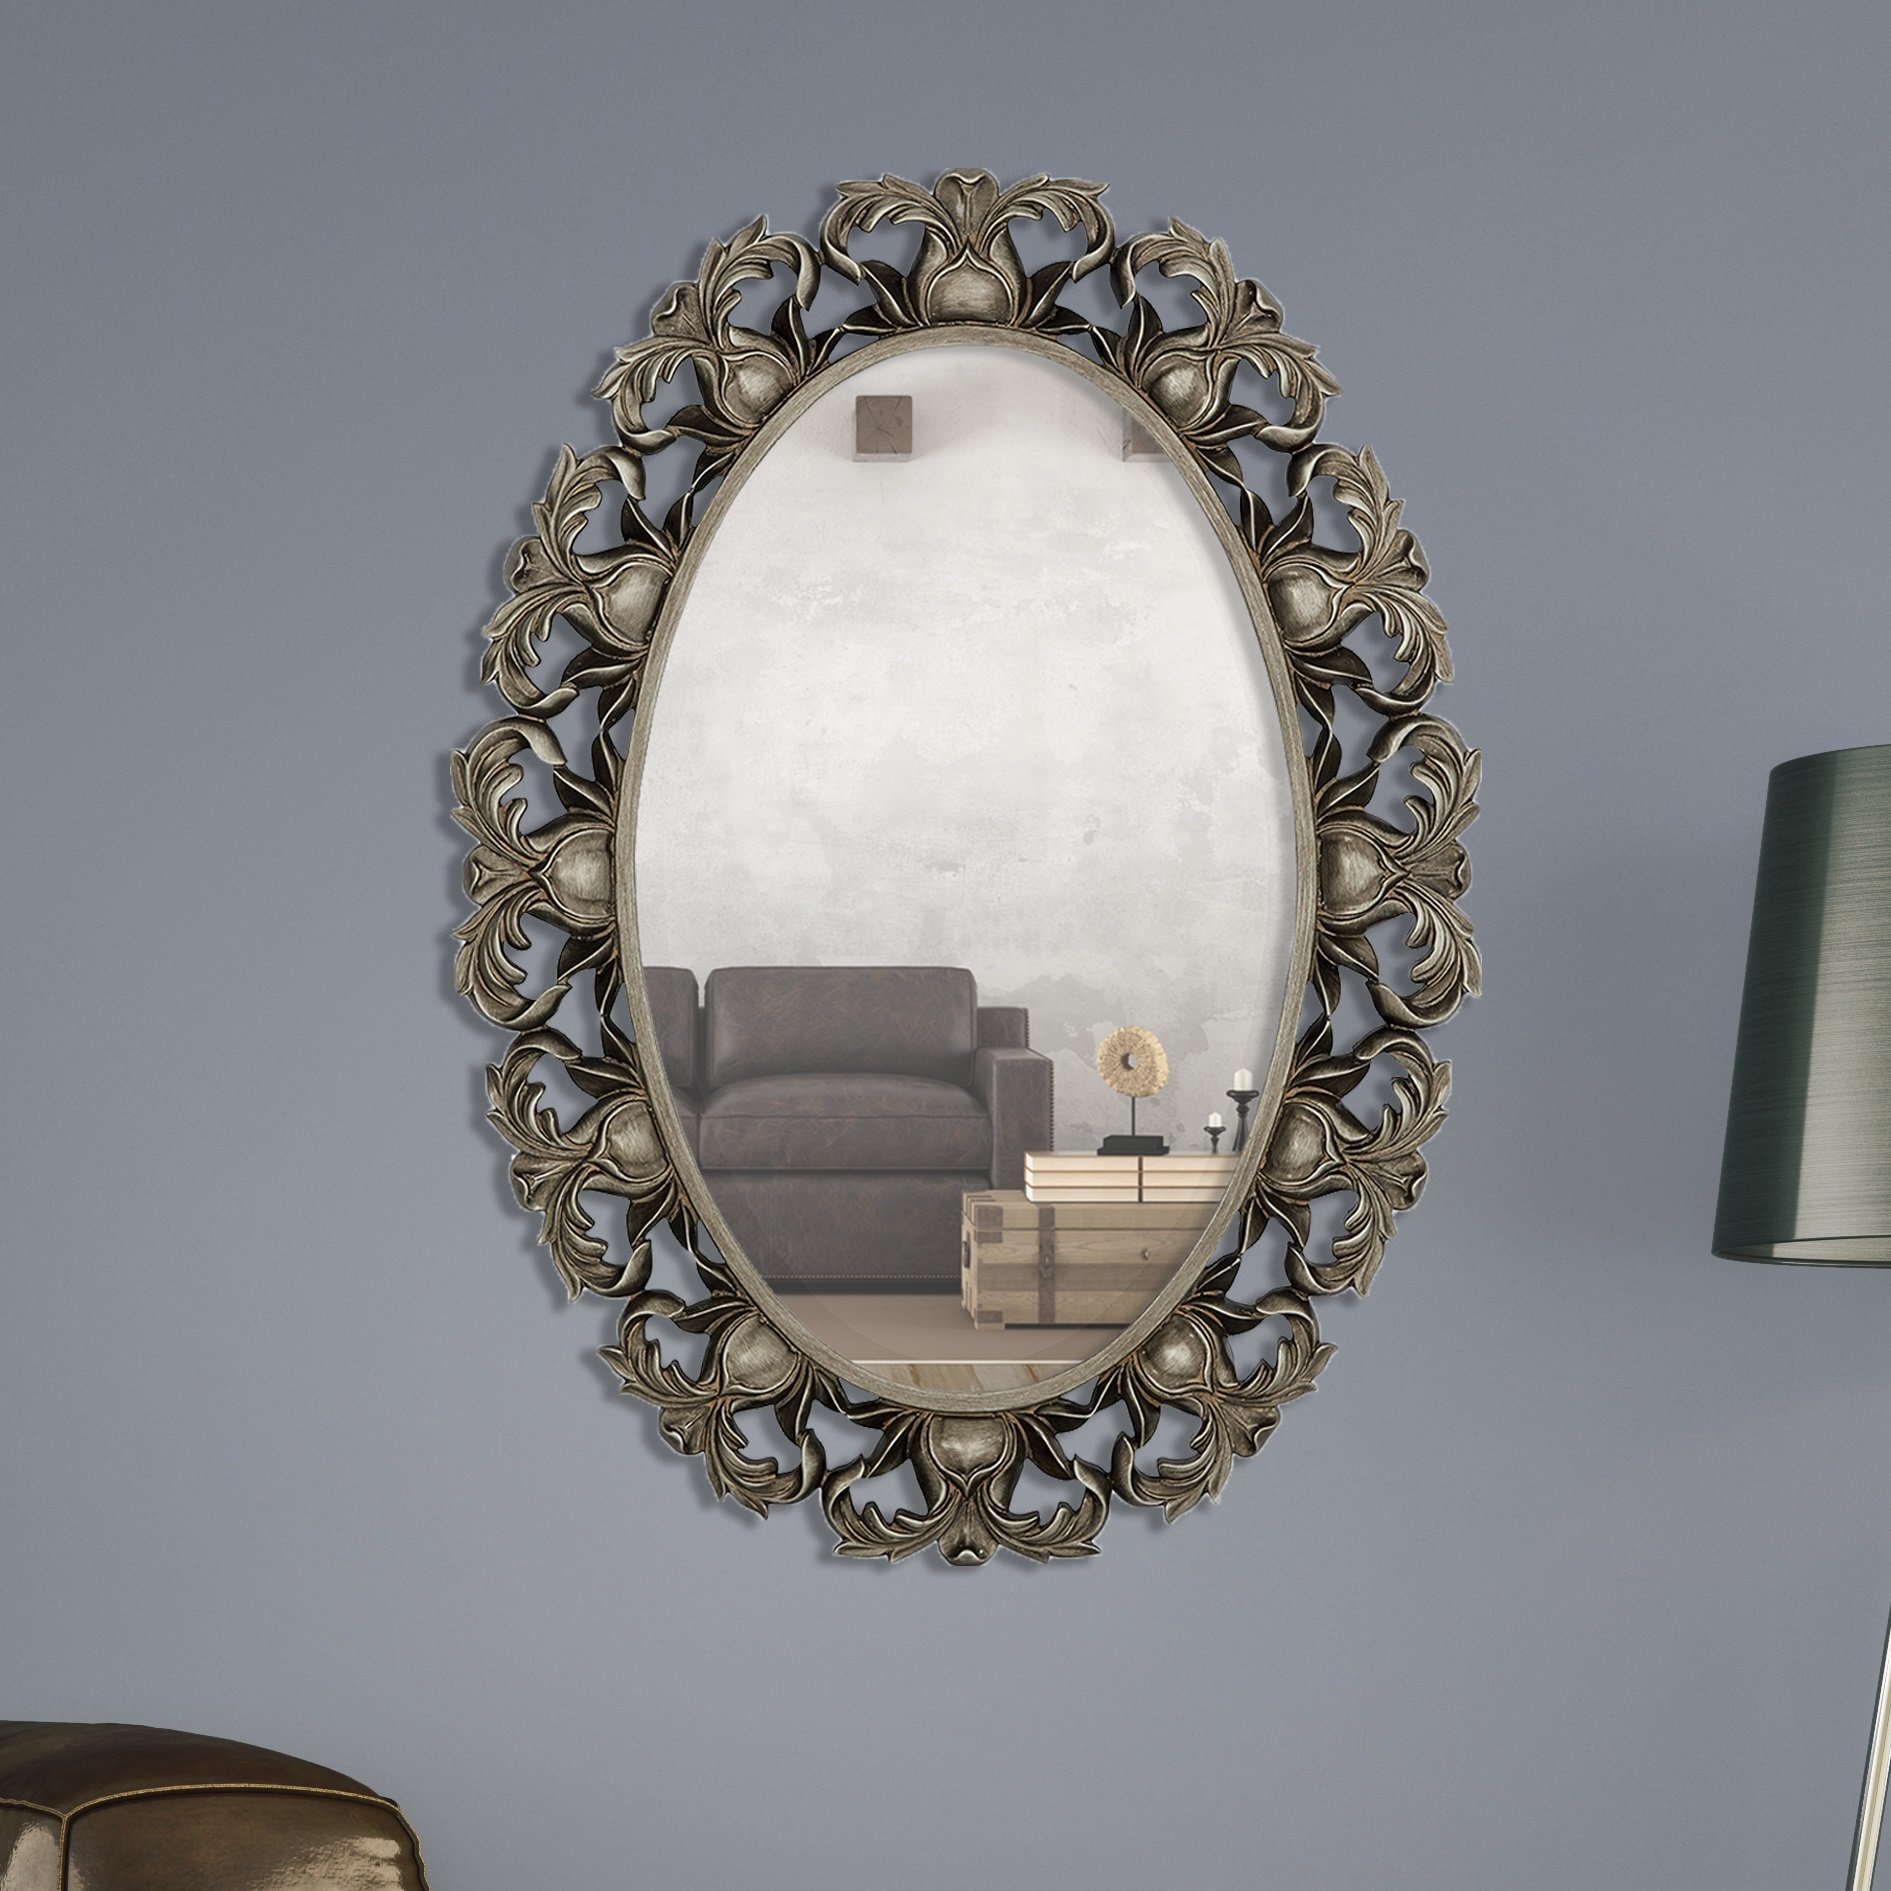 Majestic Mirror Oval Beveled Glass Framed Wall Bathroom For Thornbury Oval Bevel Frameless Wall Mirrors (View 18 of 20)